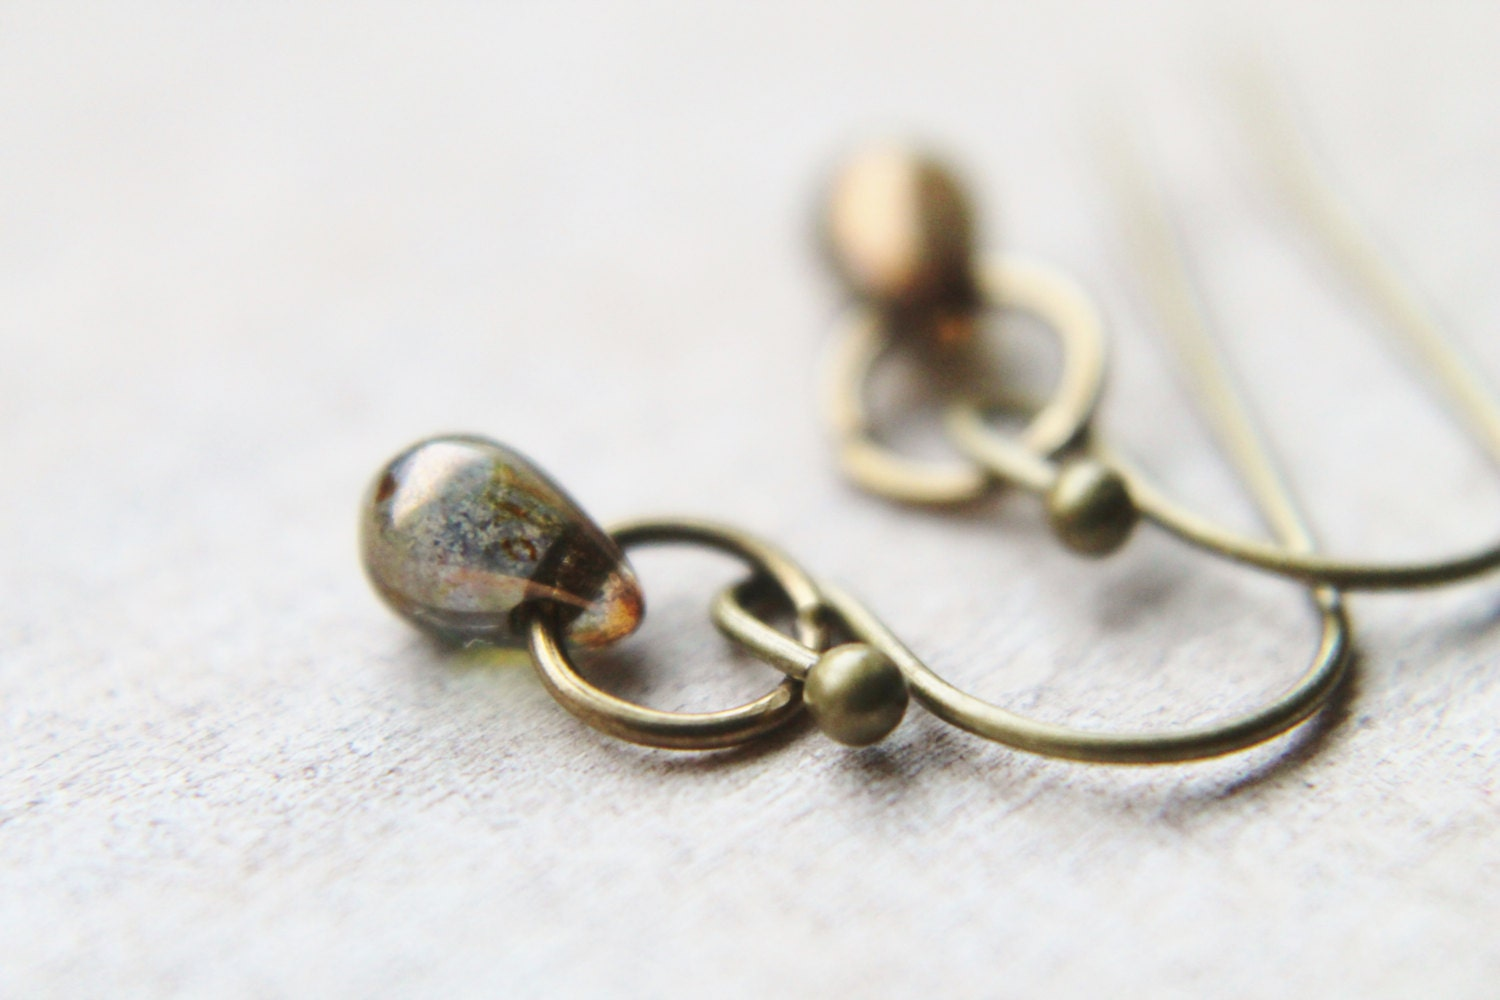 Tiny Coffee Earrings - Custom Petite Czech Glass Modern Drop Handmade Brass Jewelry Gifts for Her.